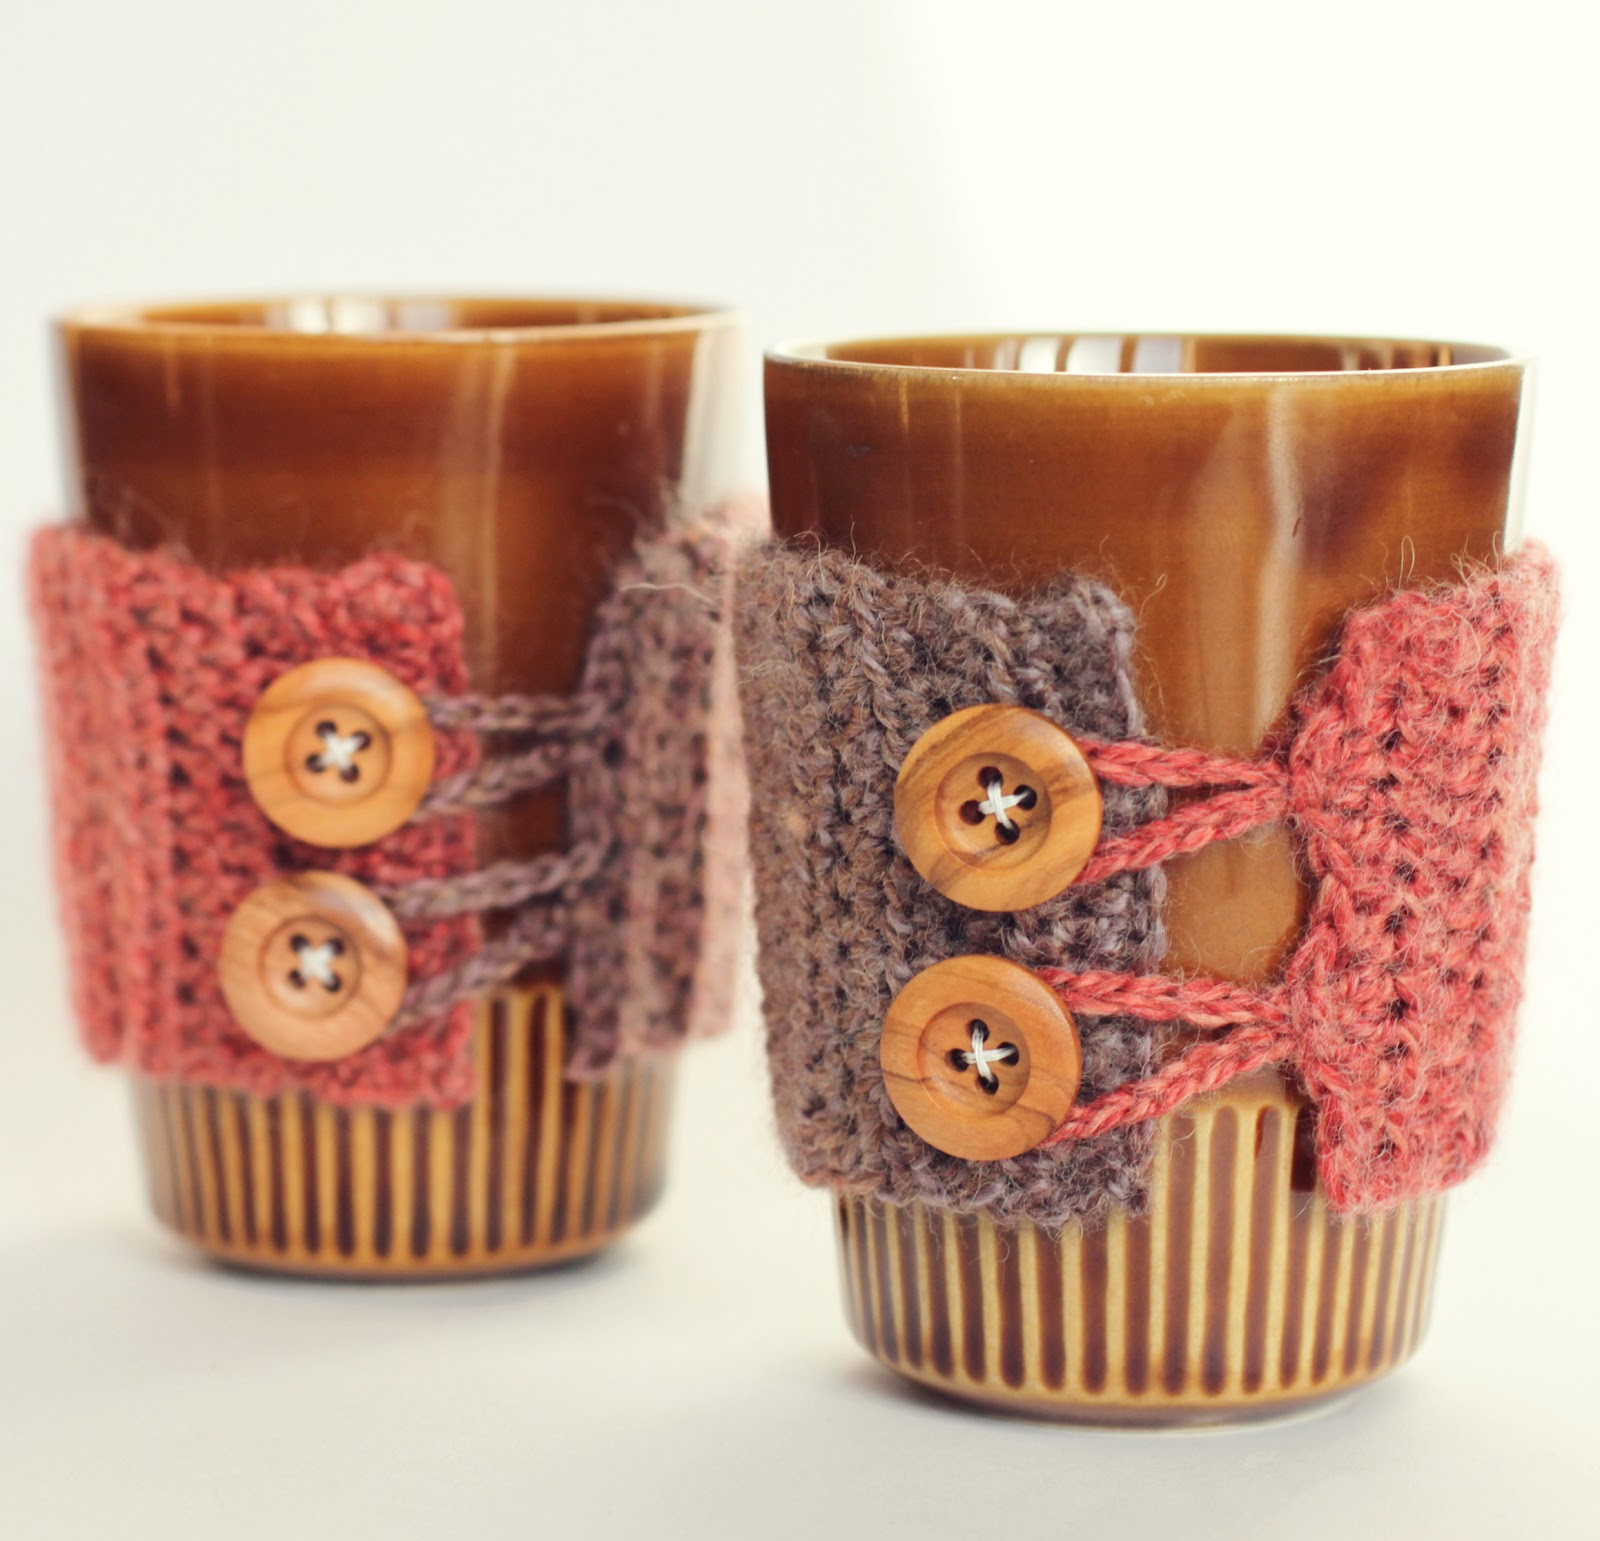 Crochet Coffee Cup Cozy Lovely L♥valizious Mug Cozy Tutorial Of Crochet Coffee Cup Cozy Inspirational Crochet Coffee Cup Cozy Pattern Pdf Download Coffee Cup Cozy